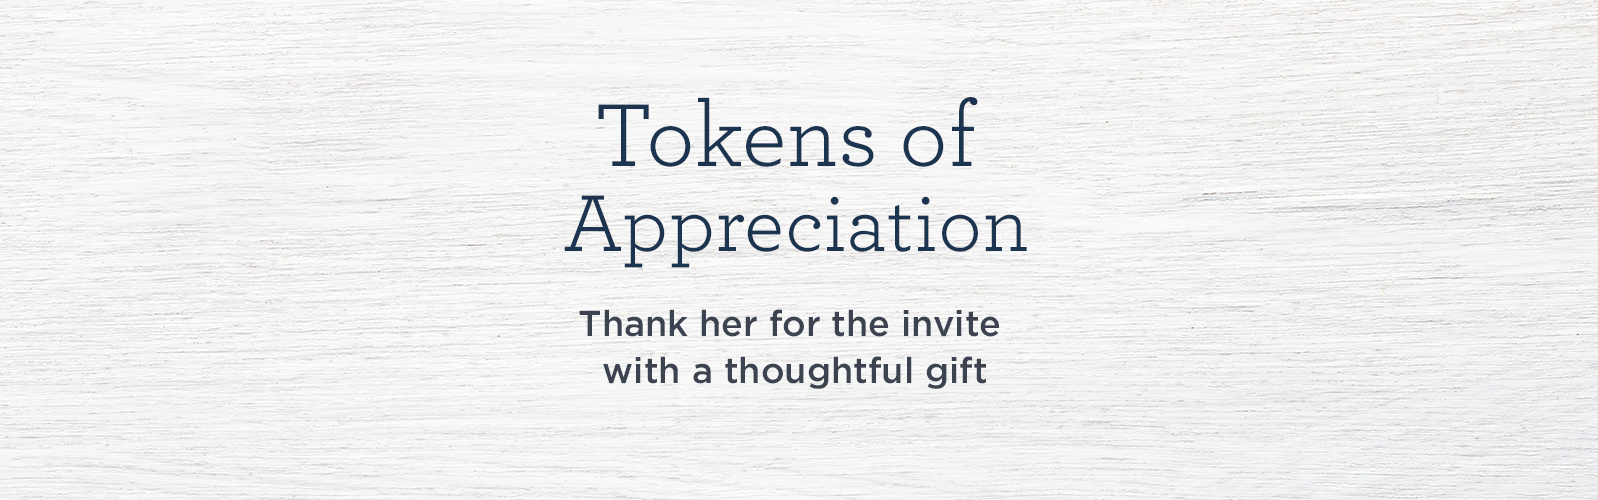 Tokens of Appreciation Thank her for the invite with a thoughtful gift